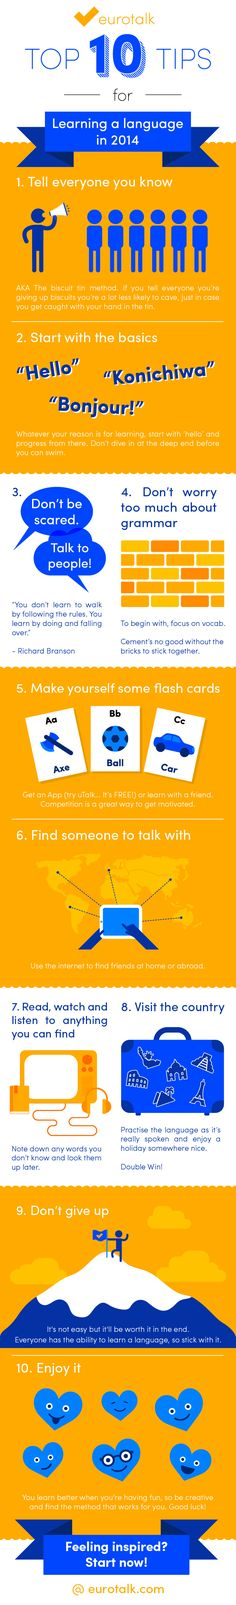 Has learning a language changed since last year? There are definitely many tips we can take from this infographic a year and a half later. We particularly like and #3 Don't be scared to talk to people! #6 Find someone to talk with! AND #10 Enjoy it!!! http://www.wordperfectenglish.com/practice-speaking-english/